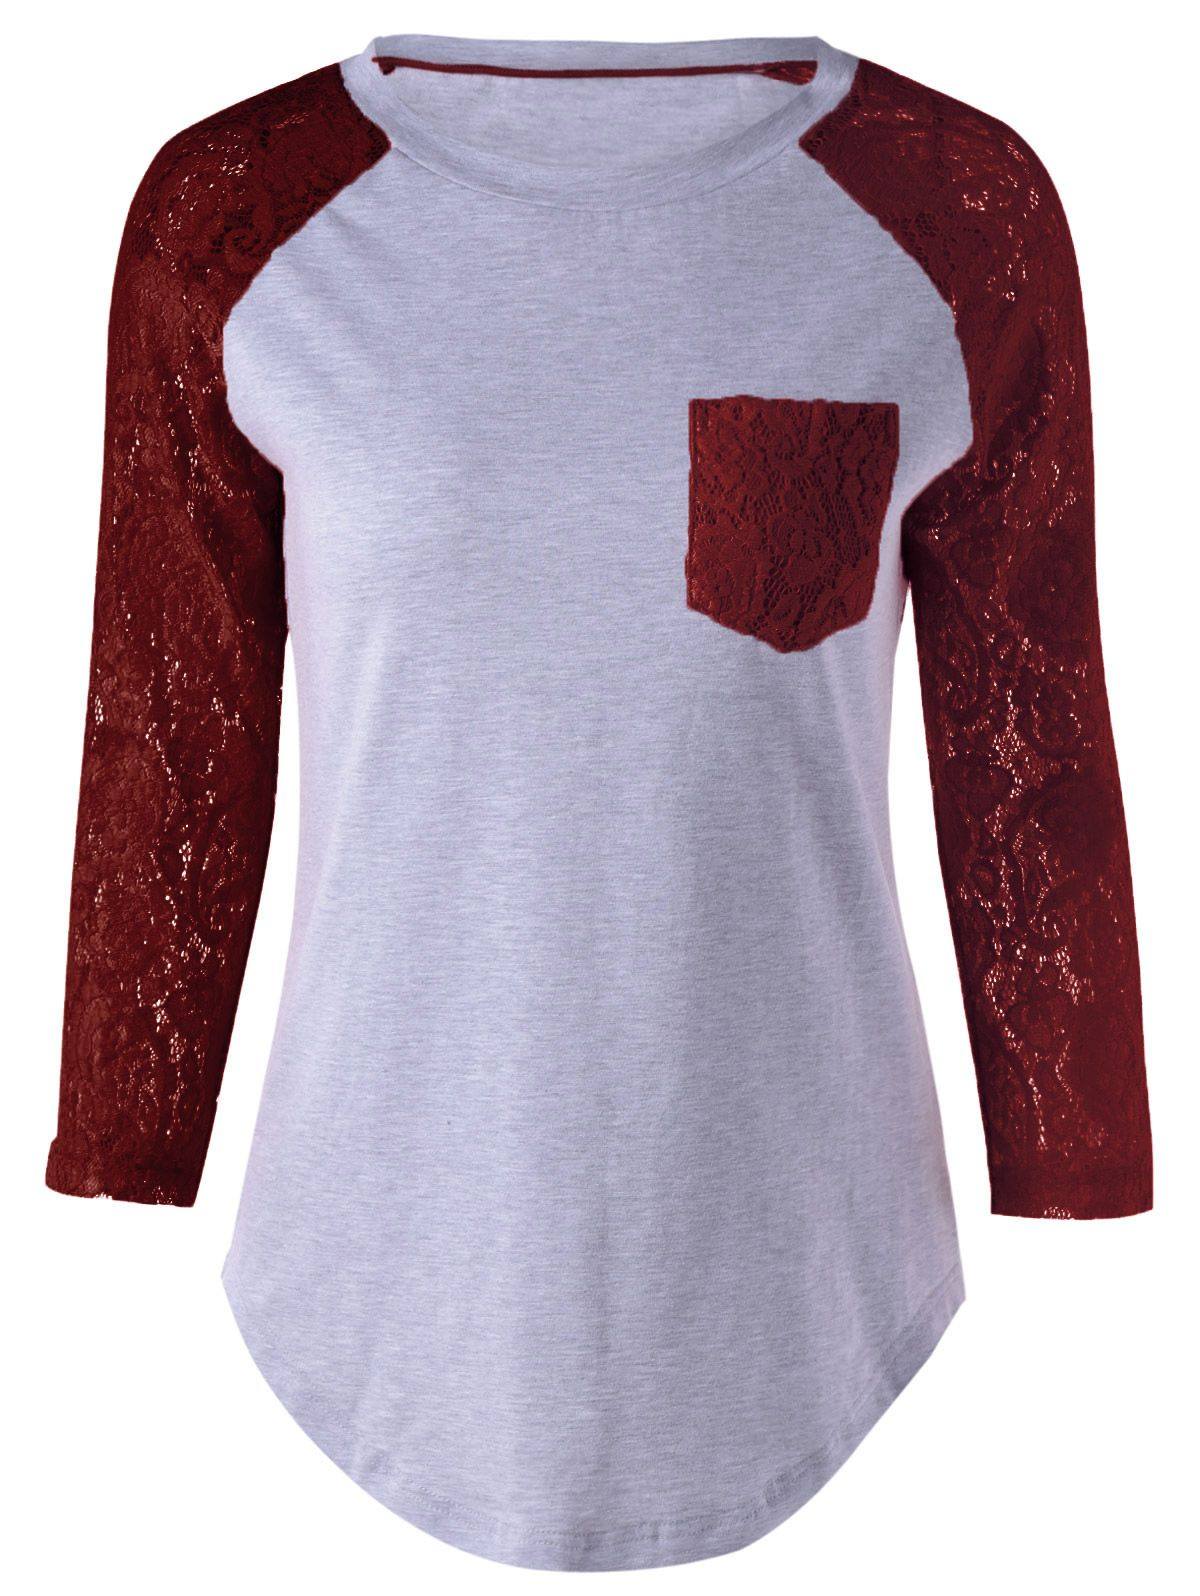 Plus Size Lace Splicing Single Pocket TShirt is part of Country Clothes Plus Size - A wholesale clothing supplier Who specializes offering customers best Quality of clothing with a relatively lower price by connection them directly with the clothing factory